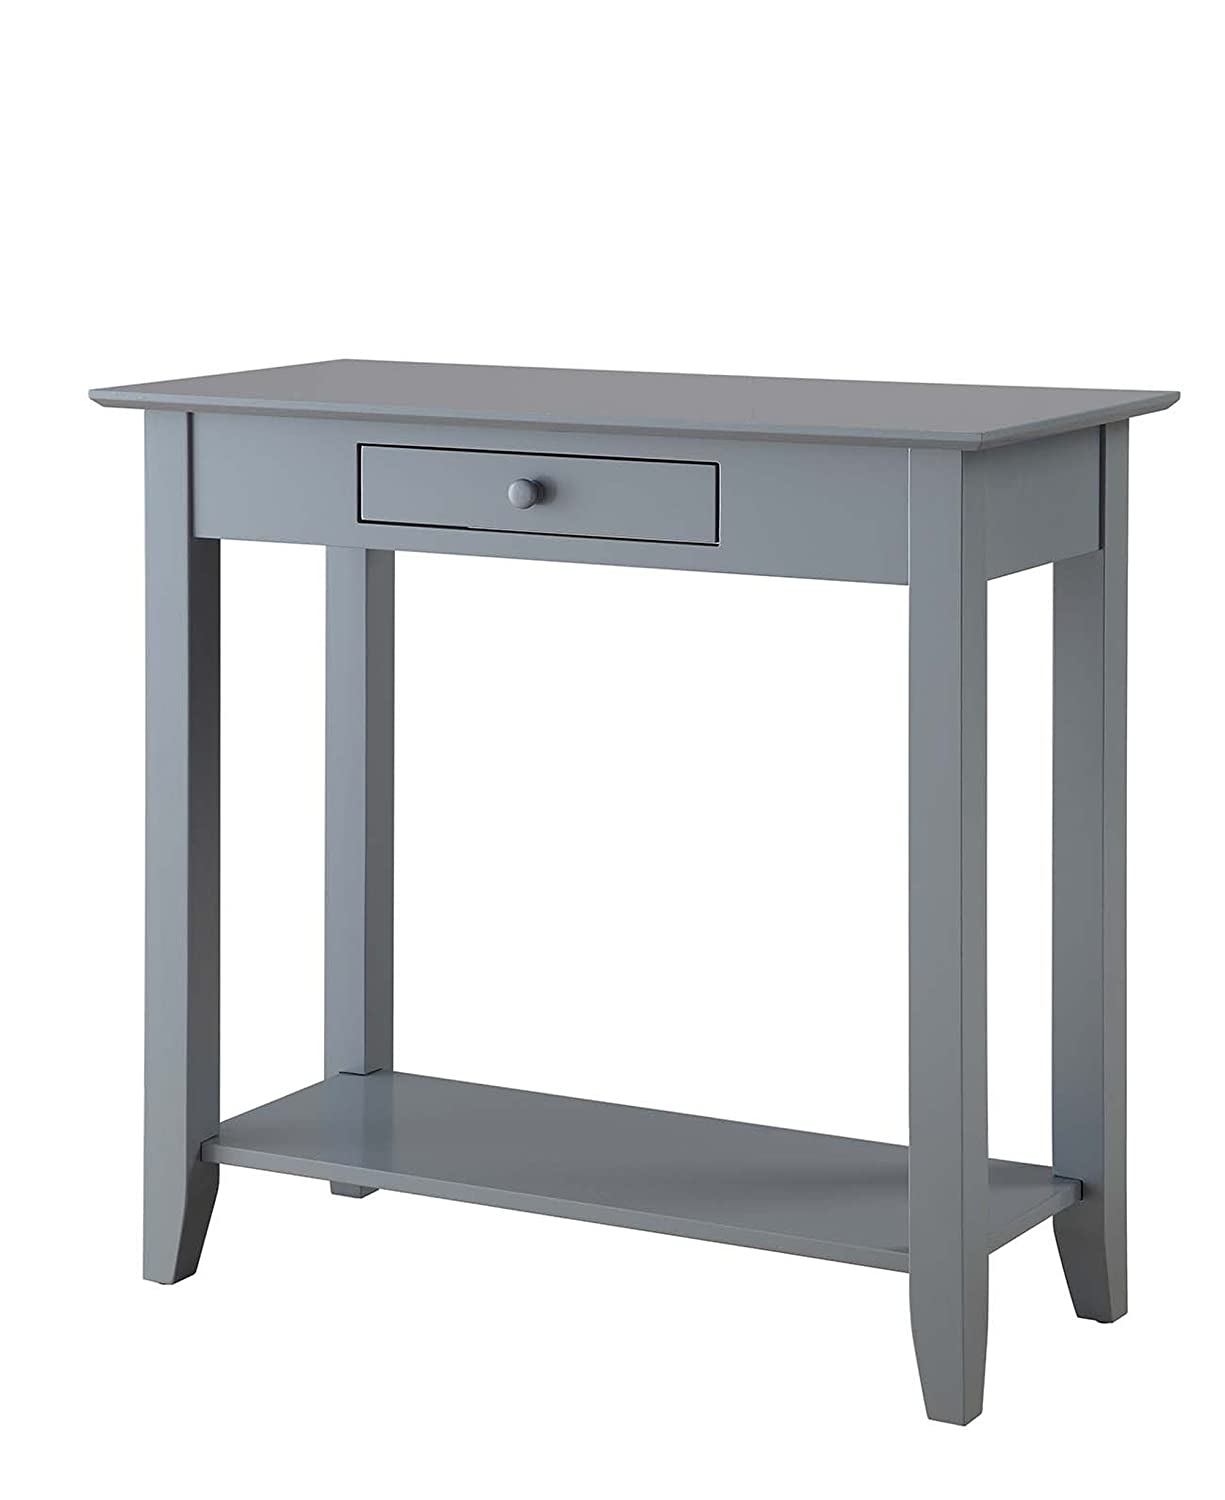 Convenience Concepts American Heritage Hall Table with Drawer and Shelf, Gray